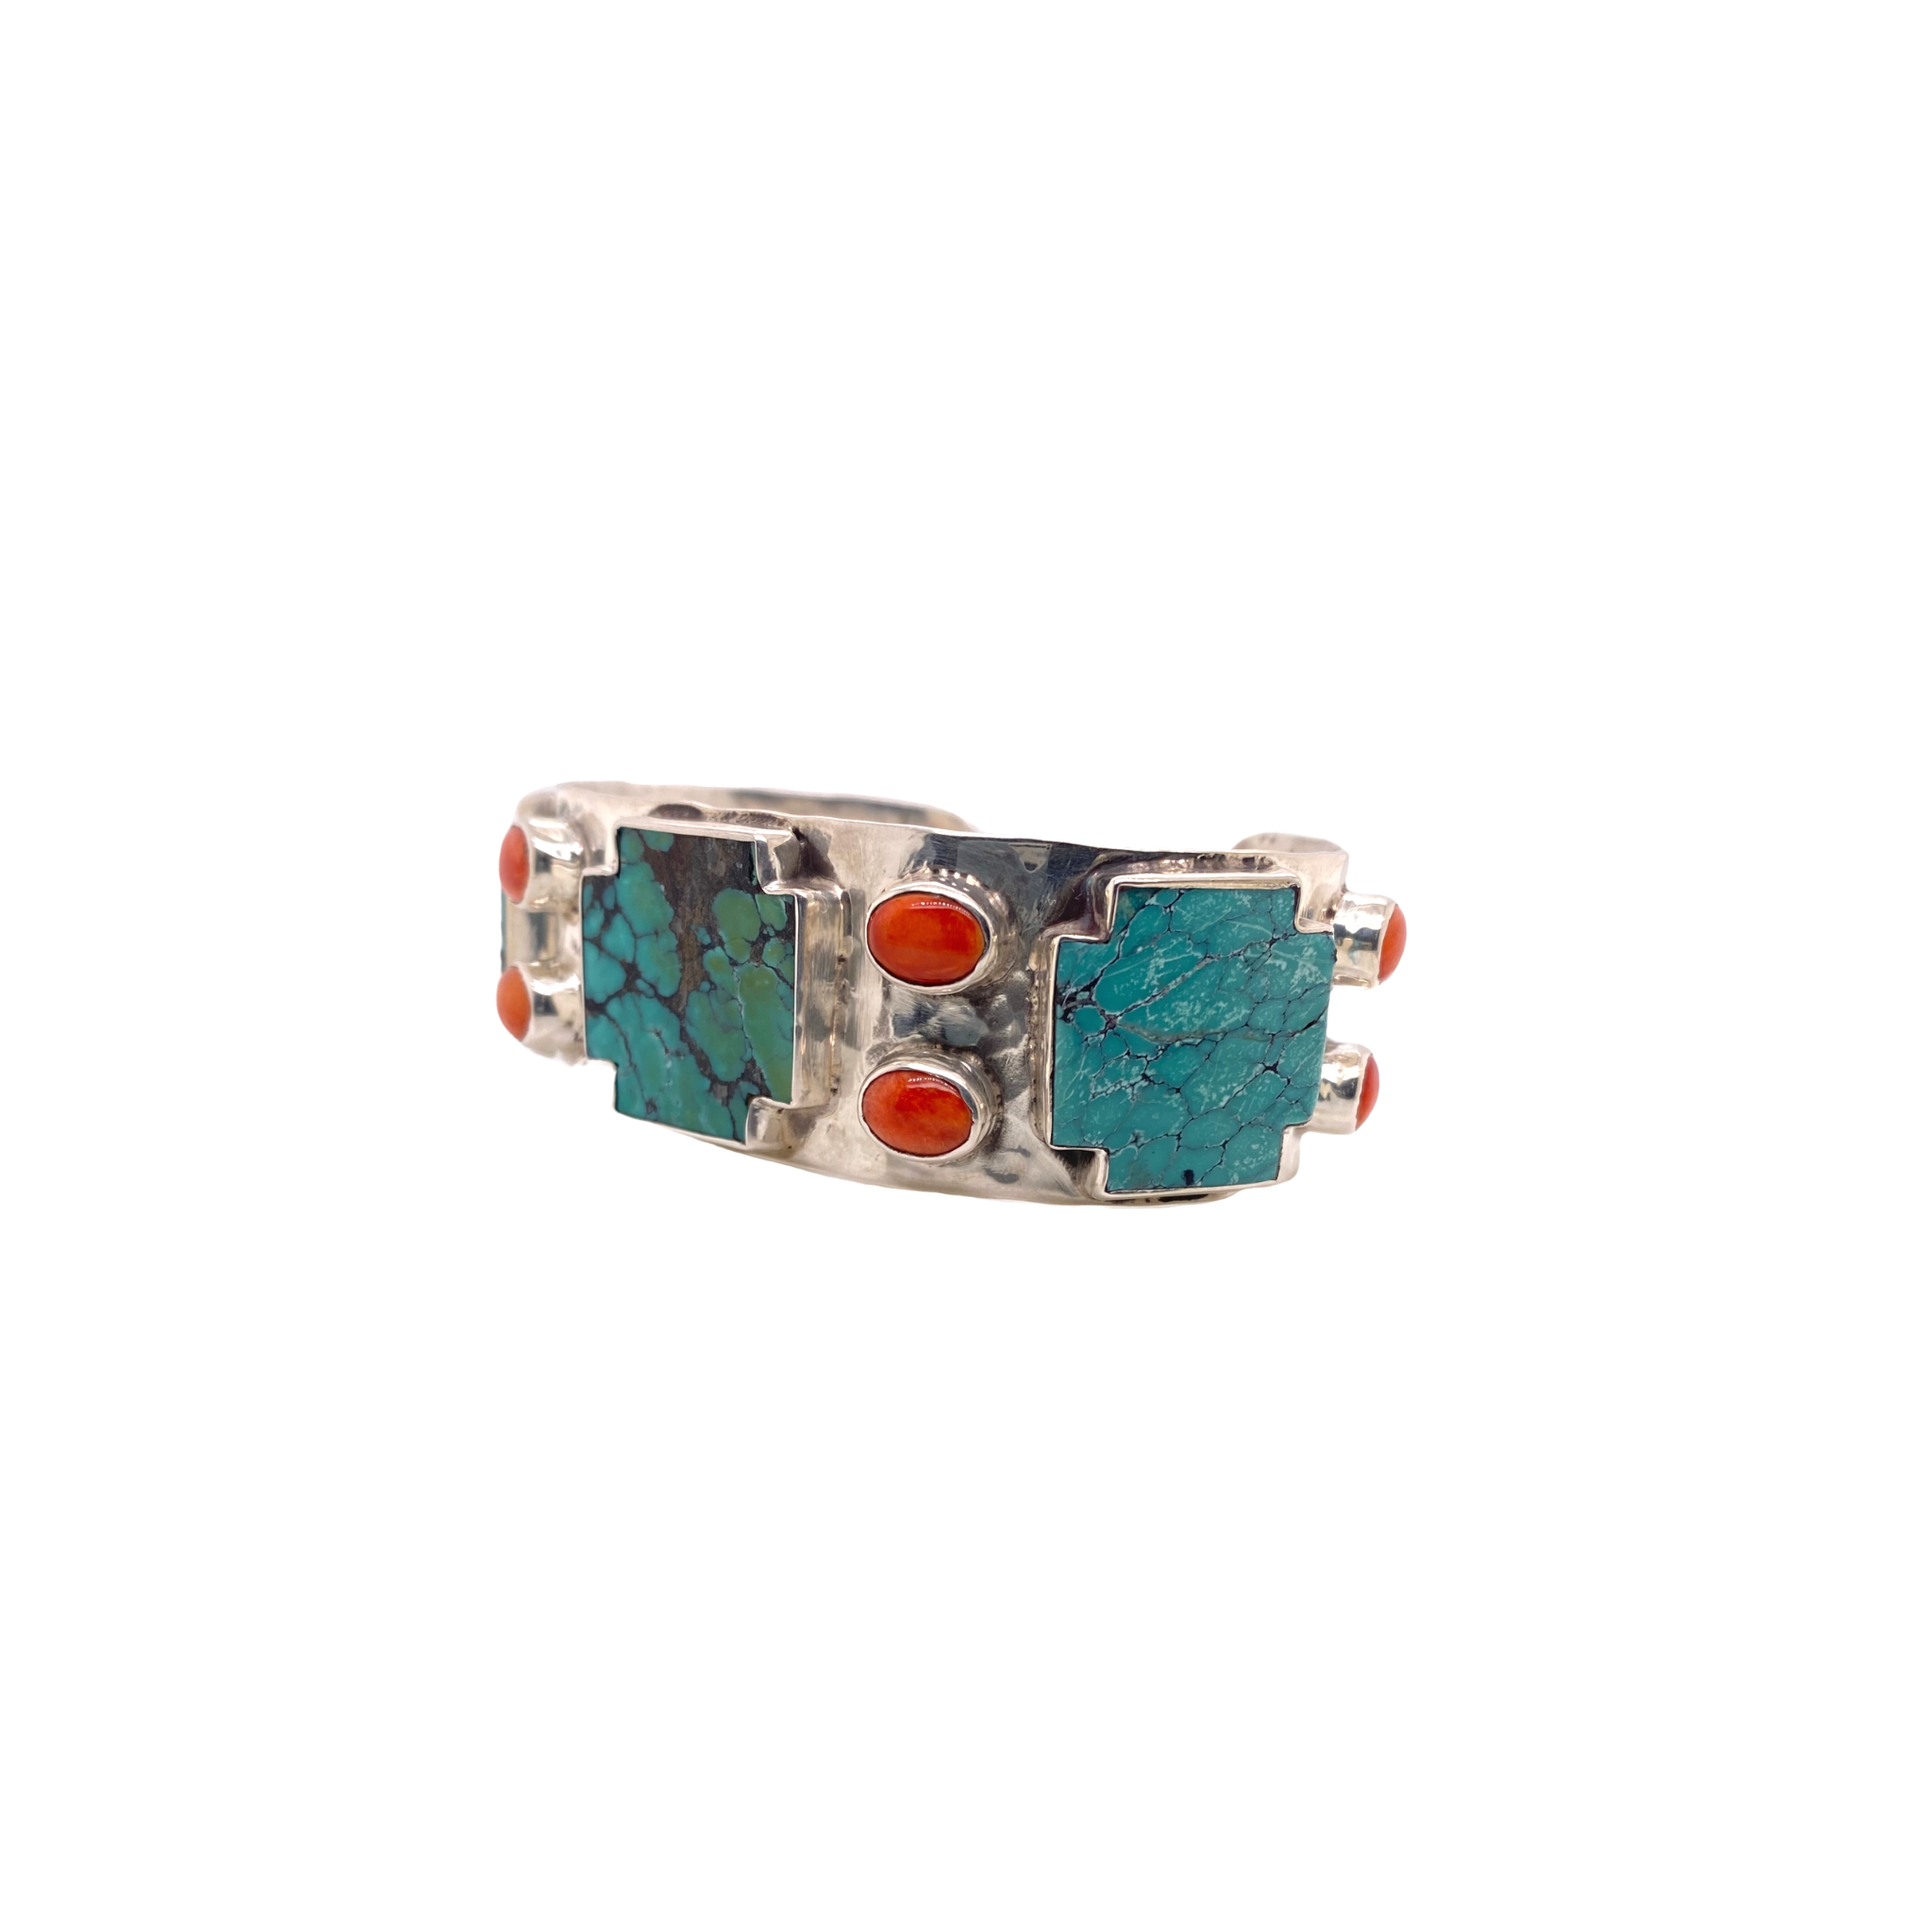 La Reyna Turquoise + Coral Cross Cuff - Karlas Jewelry & Gifts